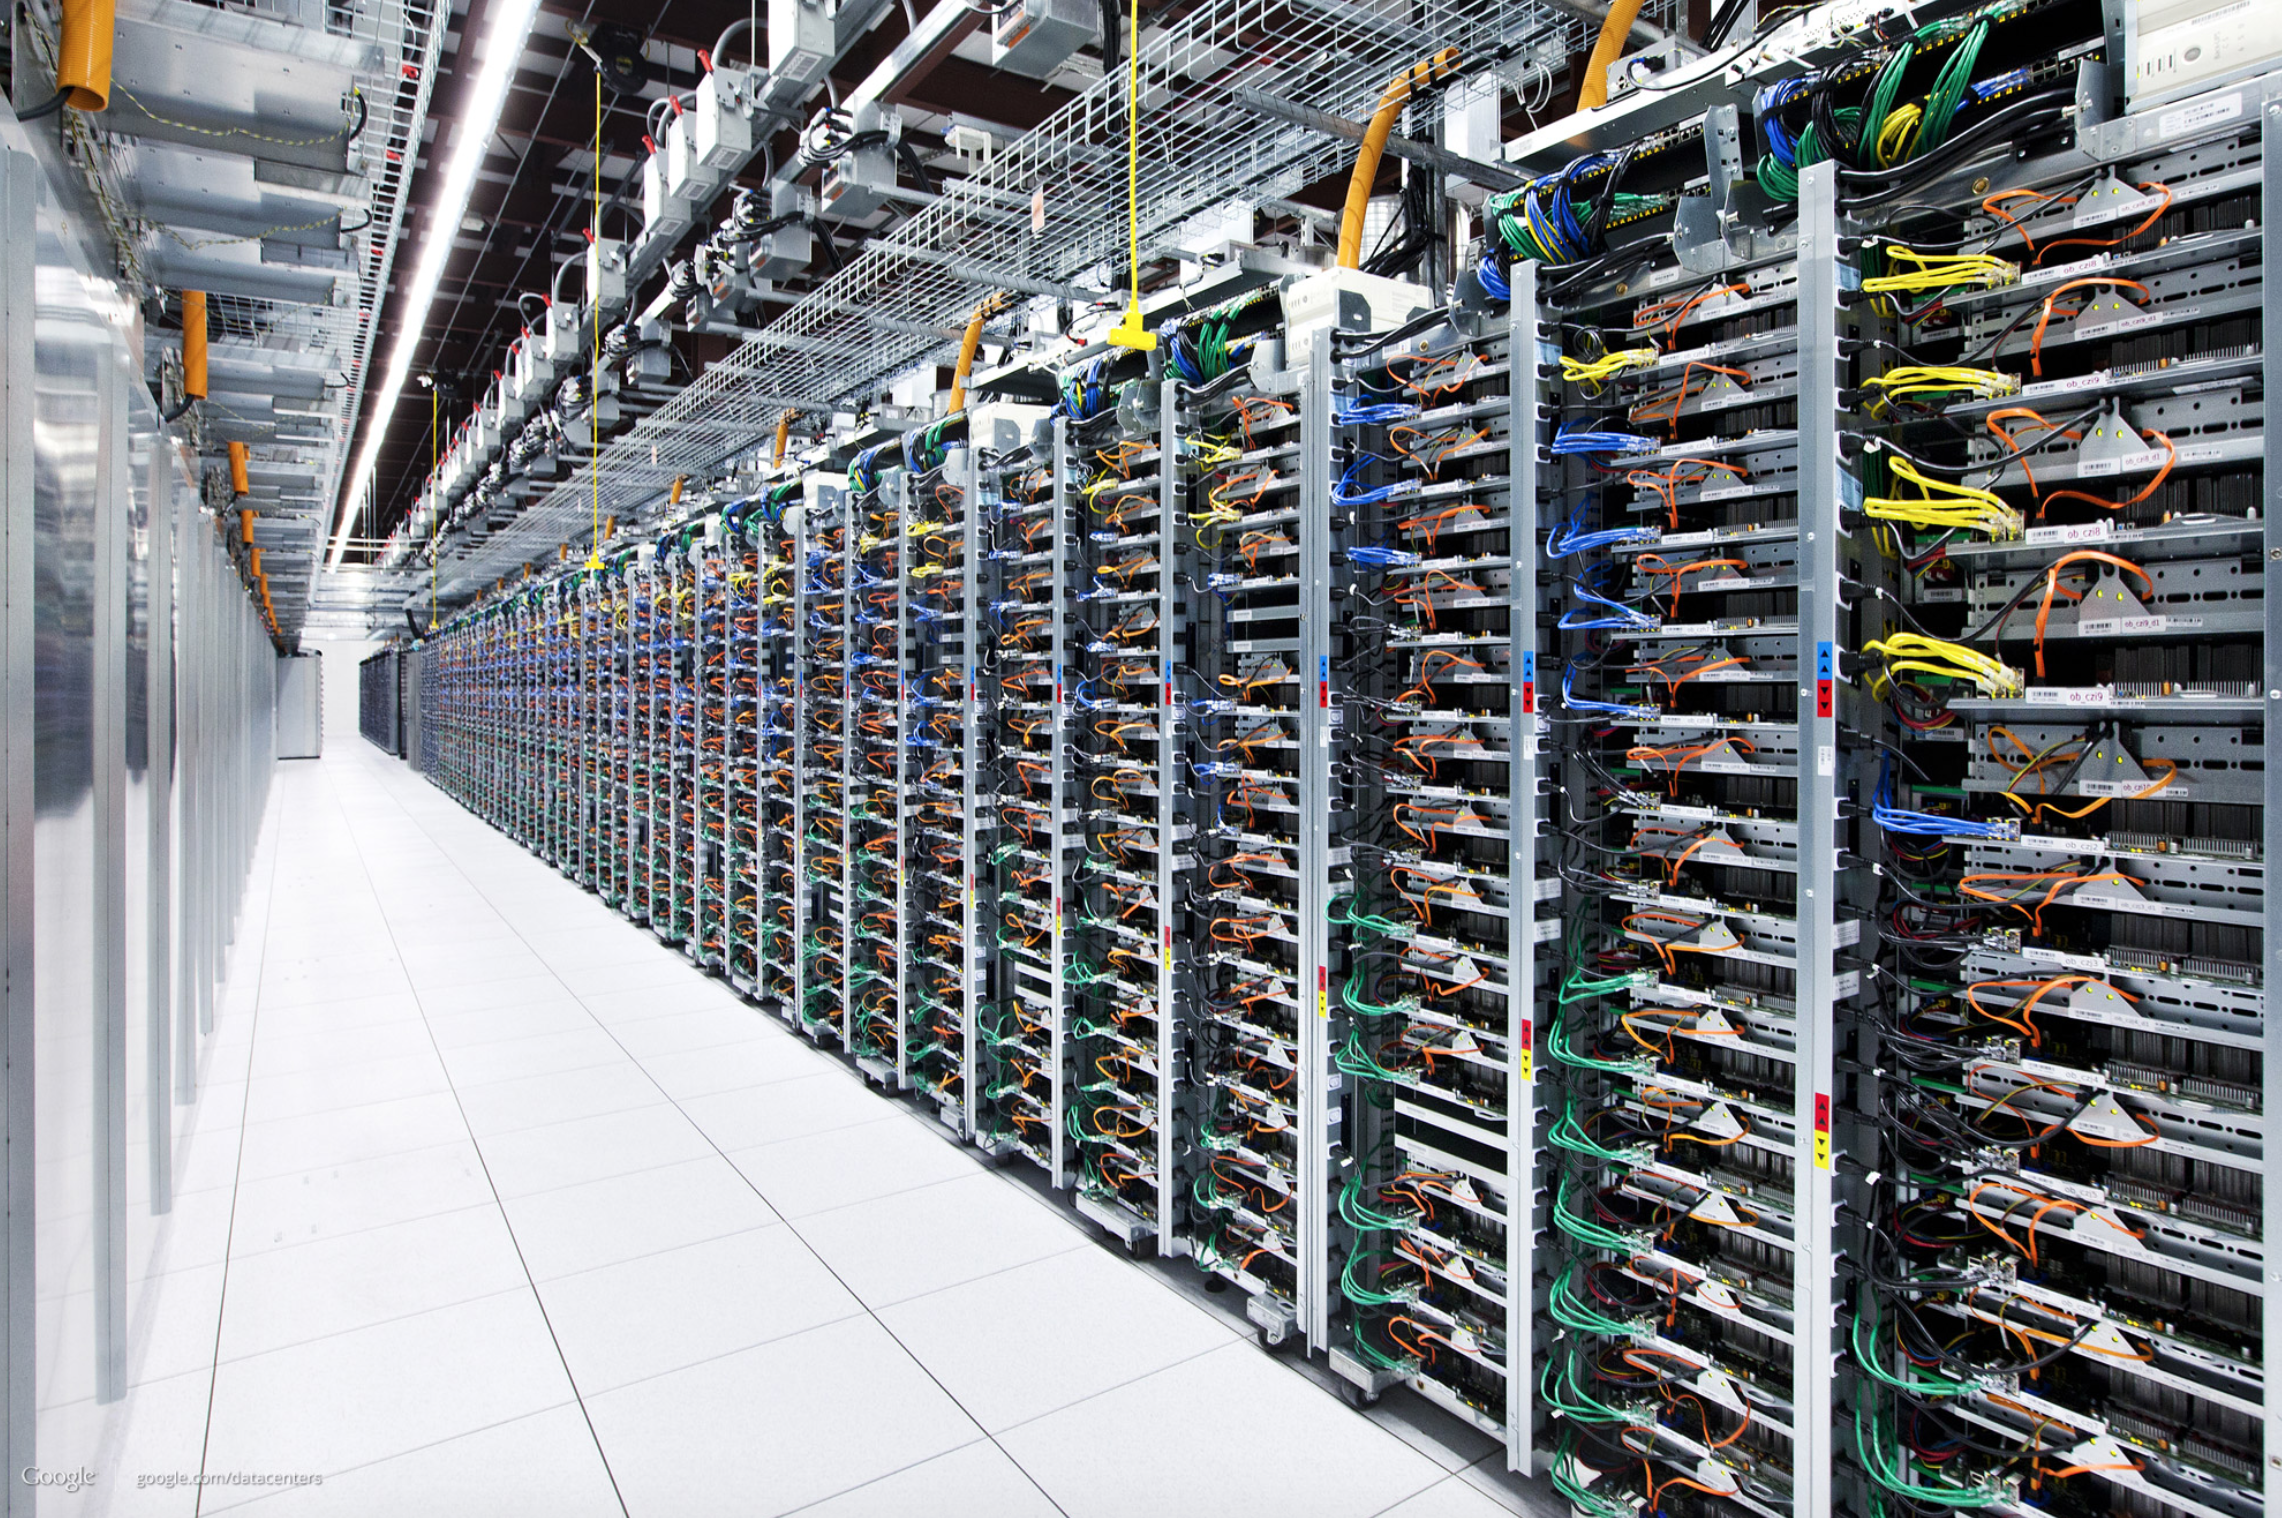 Google's data center in Oklahoma.